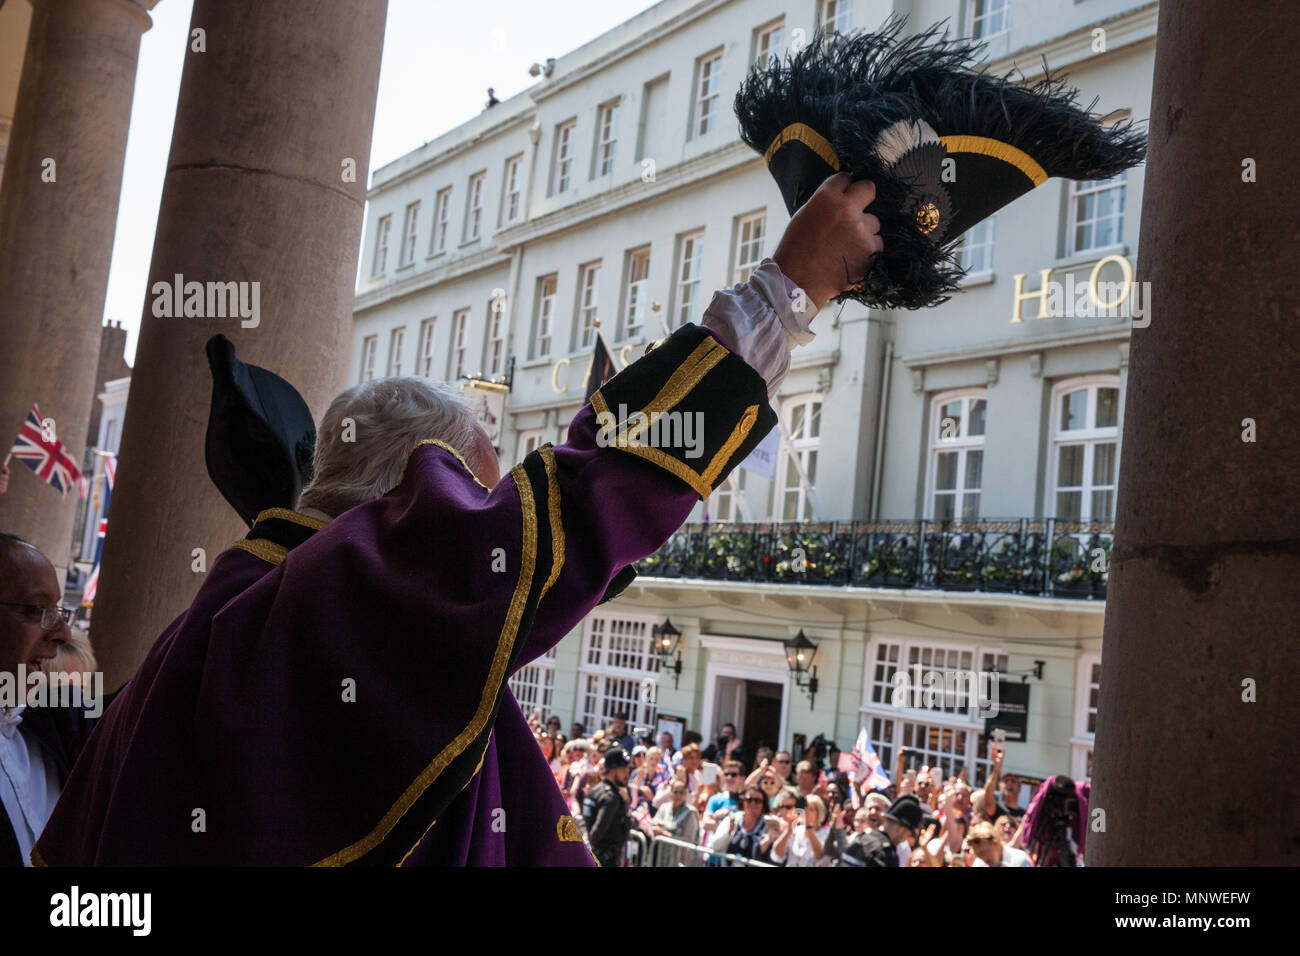 Windsor, UK. 19th May, 2018. Chris Brown, Official Town Crier of the Royal Borough of Windsor and Maidenhead, proclaims the wedding of Prince Harry and Meghan Markle at the Guildhall prior to the carriage procession. Credit: Mark Kerrison/Alamy Live News - Stock Image